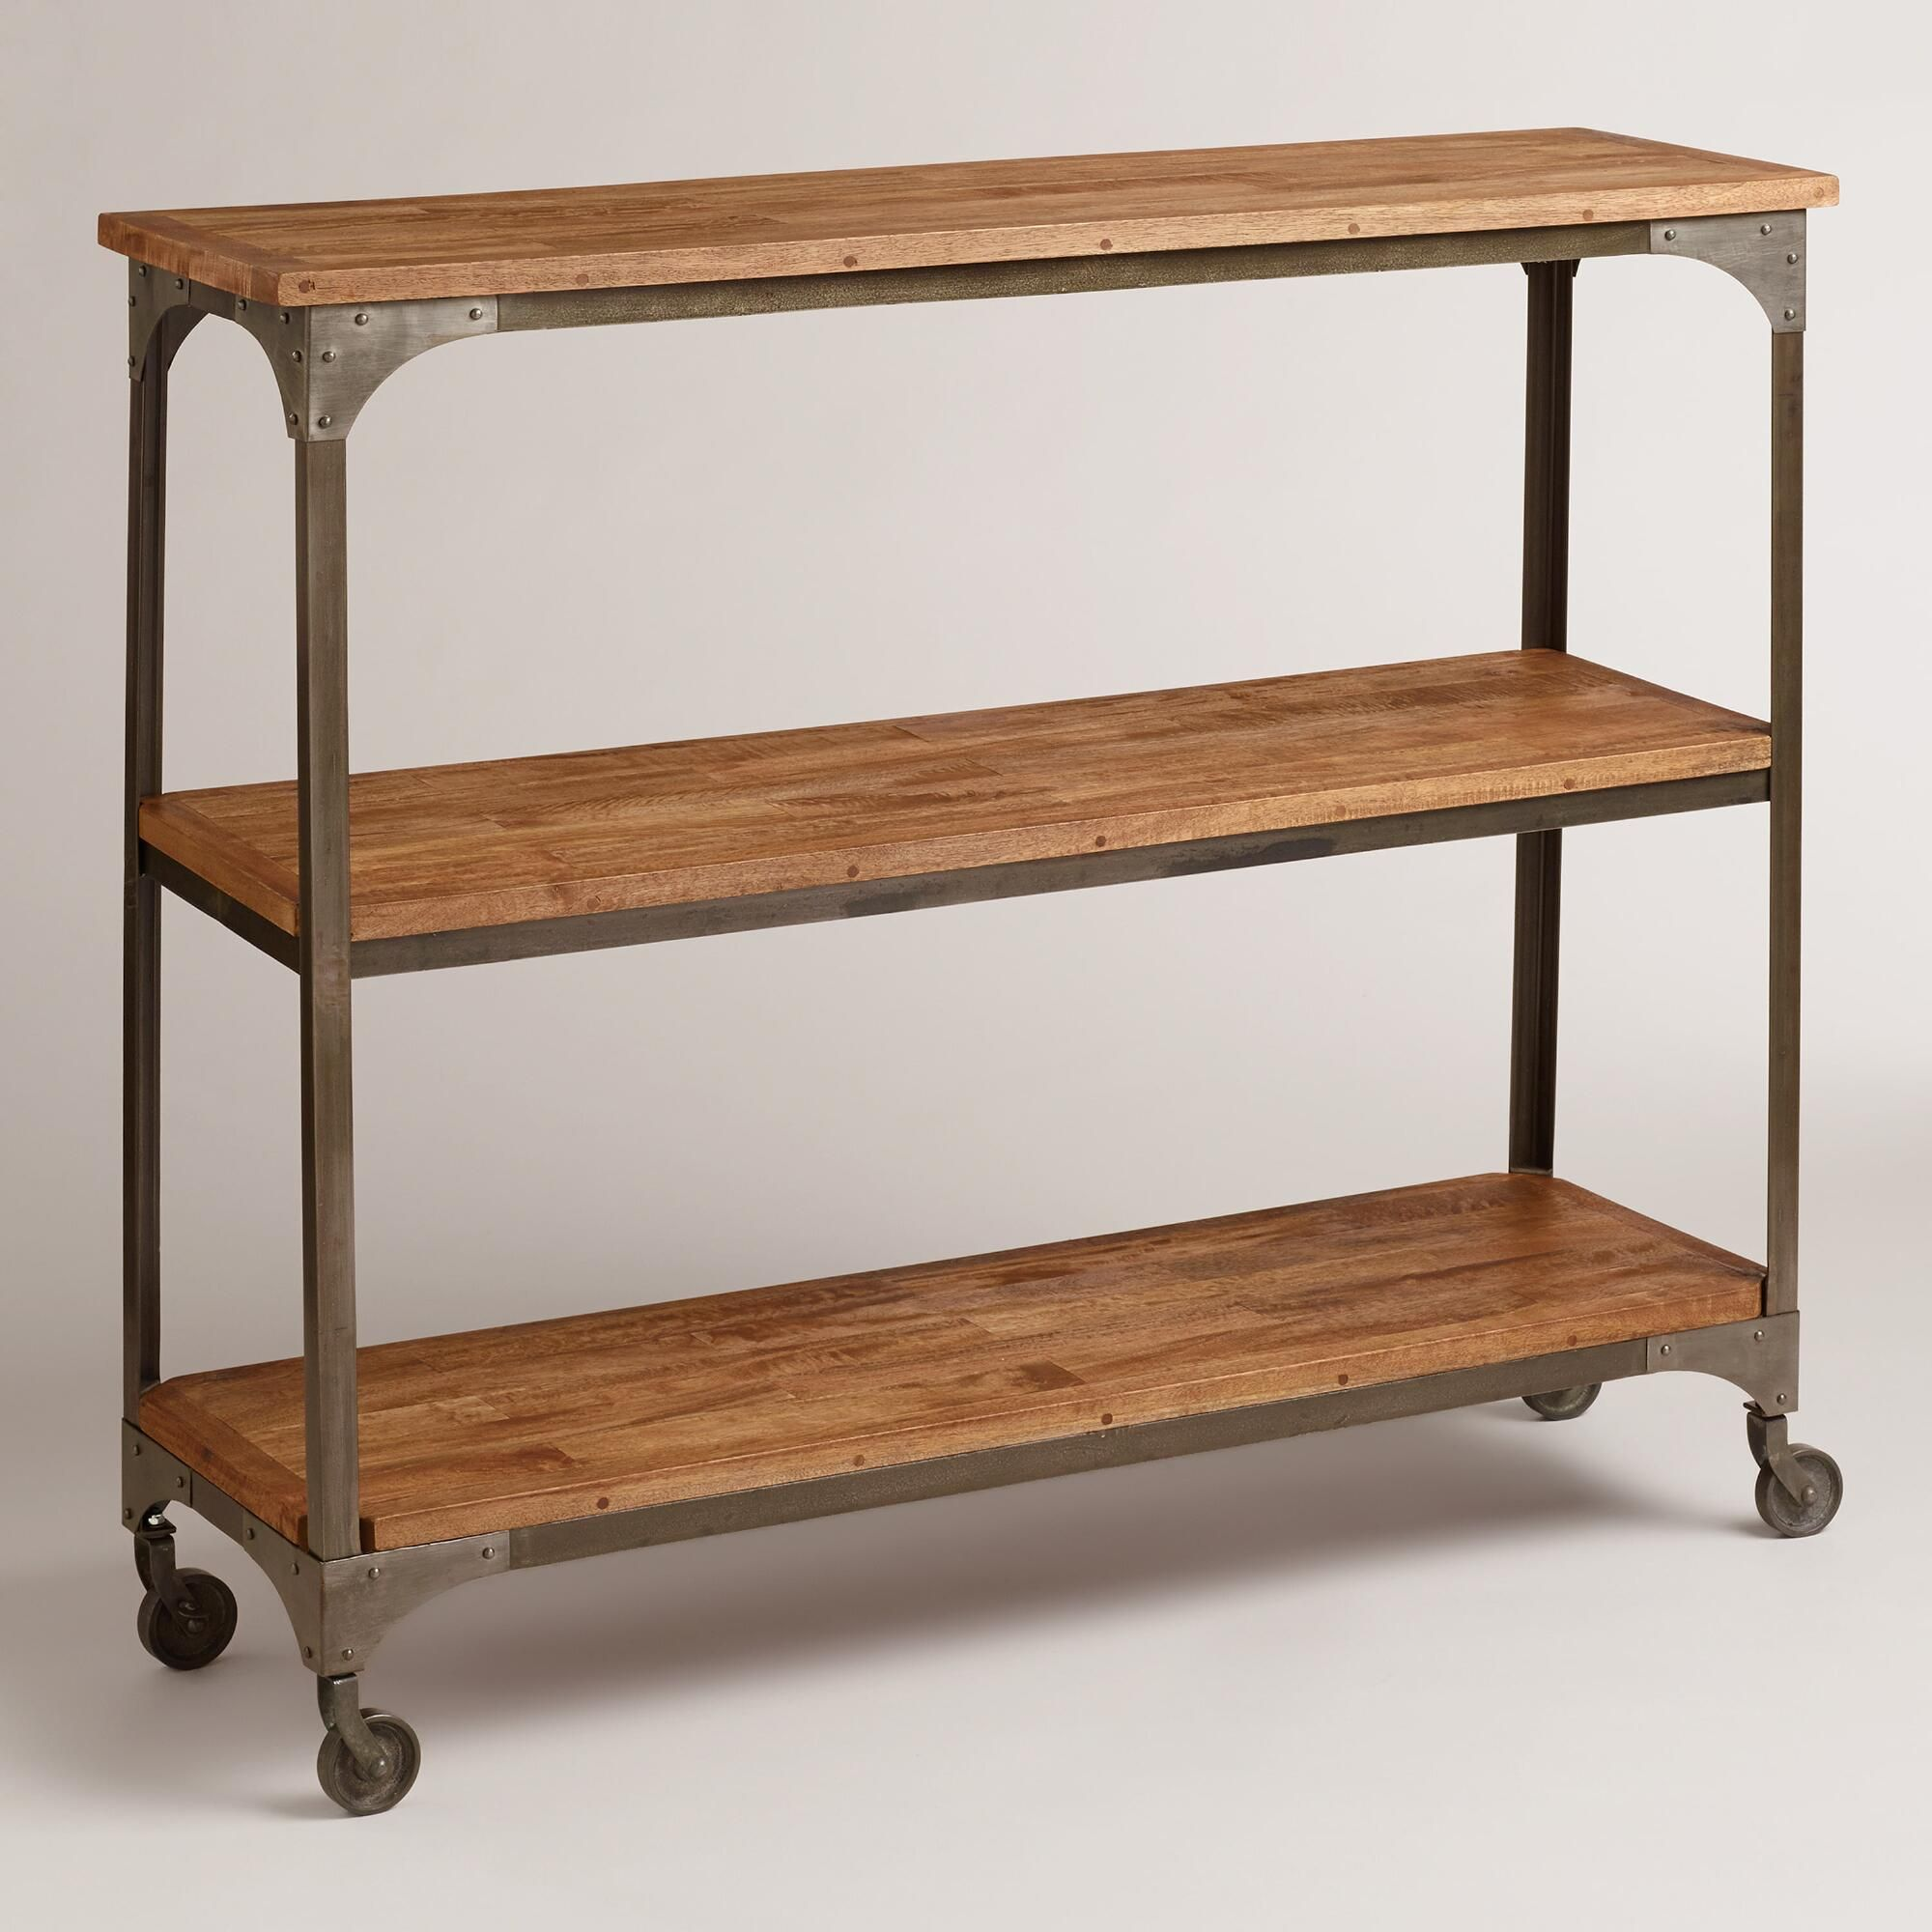 wood and metal aiden 3-shelf console table | wheels, appliances